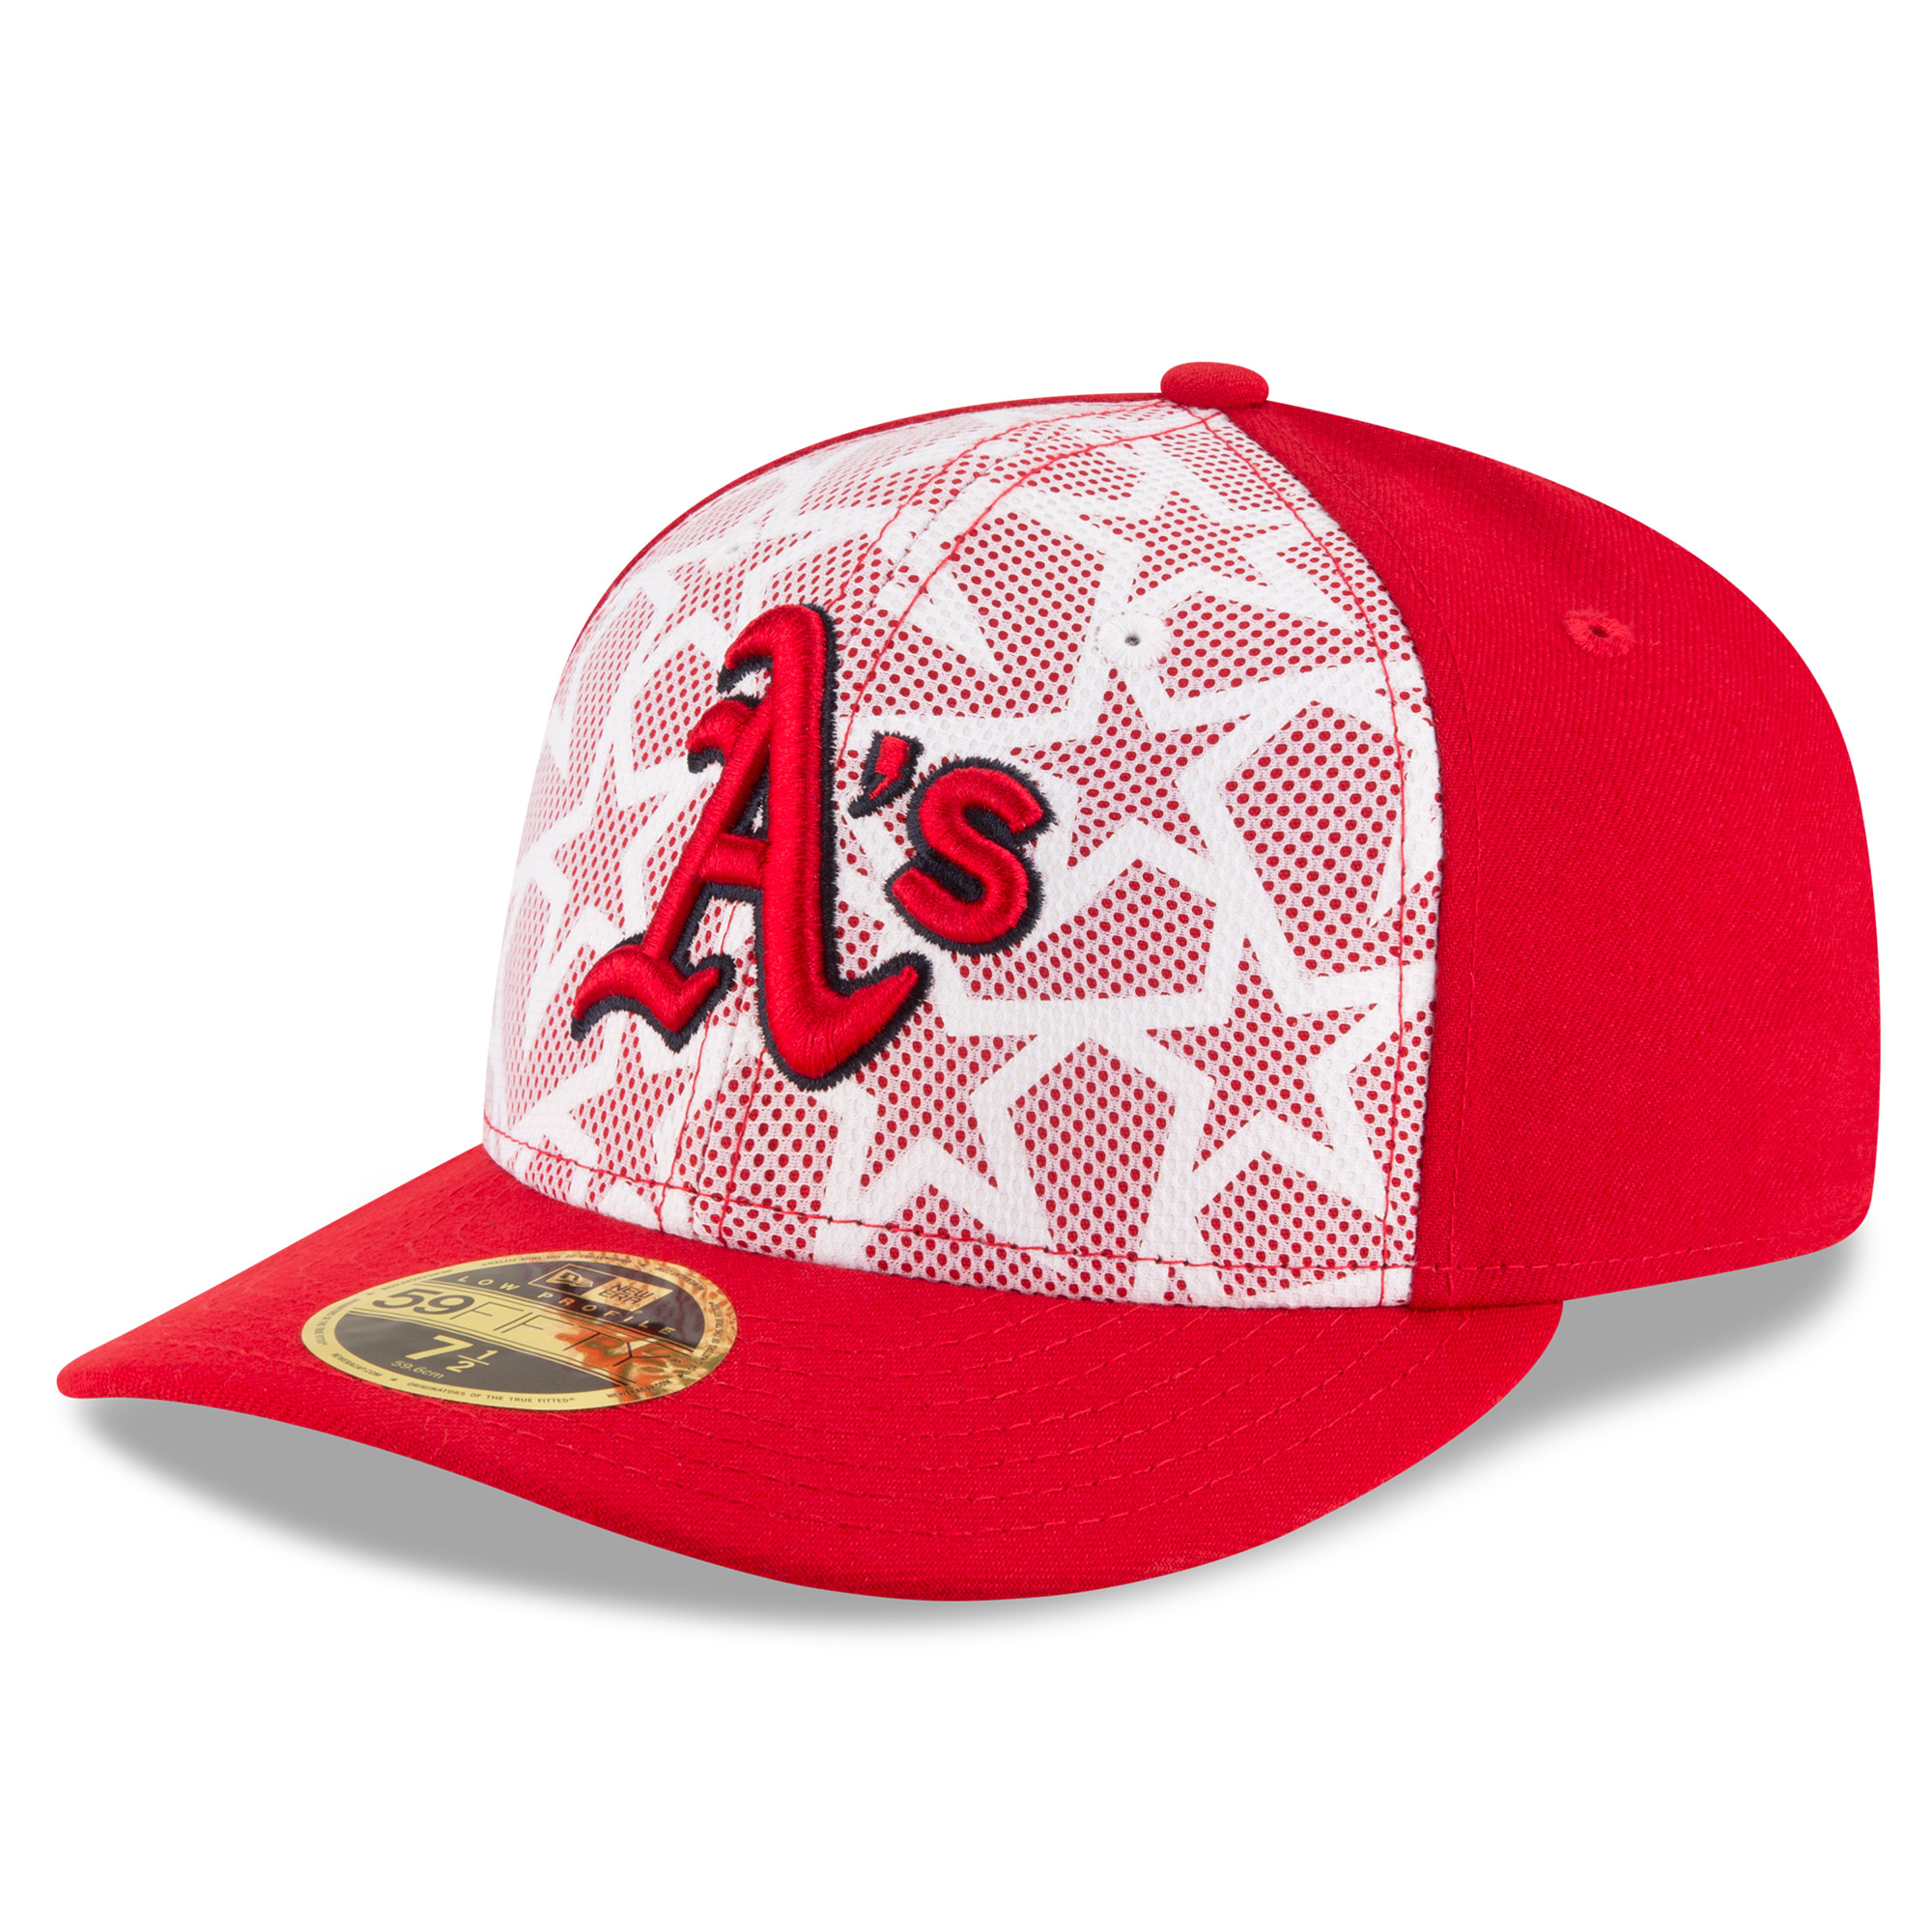 Oakland Athletics New Era Stars & Stripes Low Profile 59FIFTY Fitted Hat - White/Red